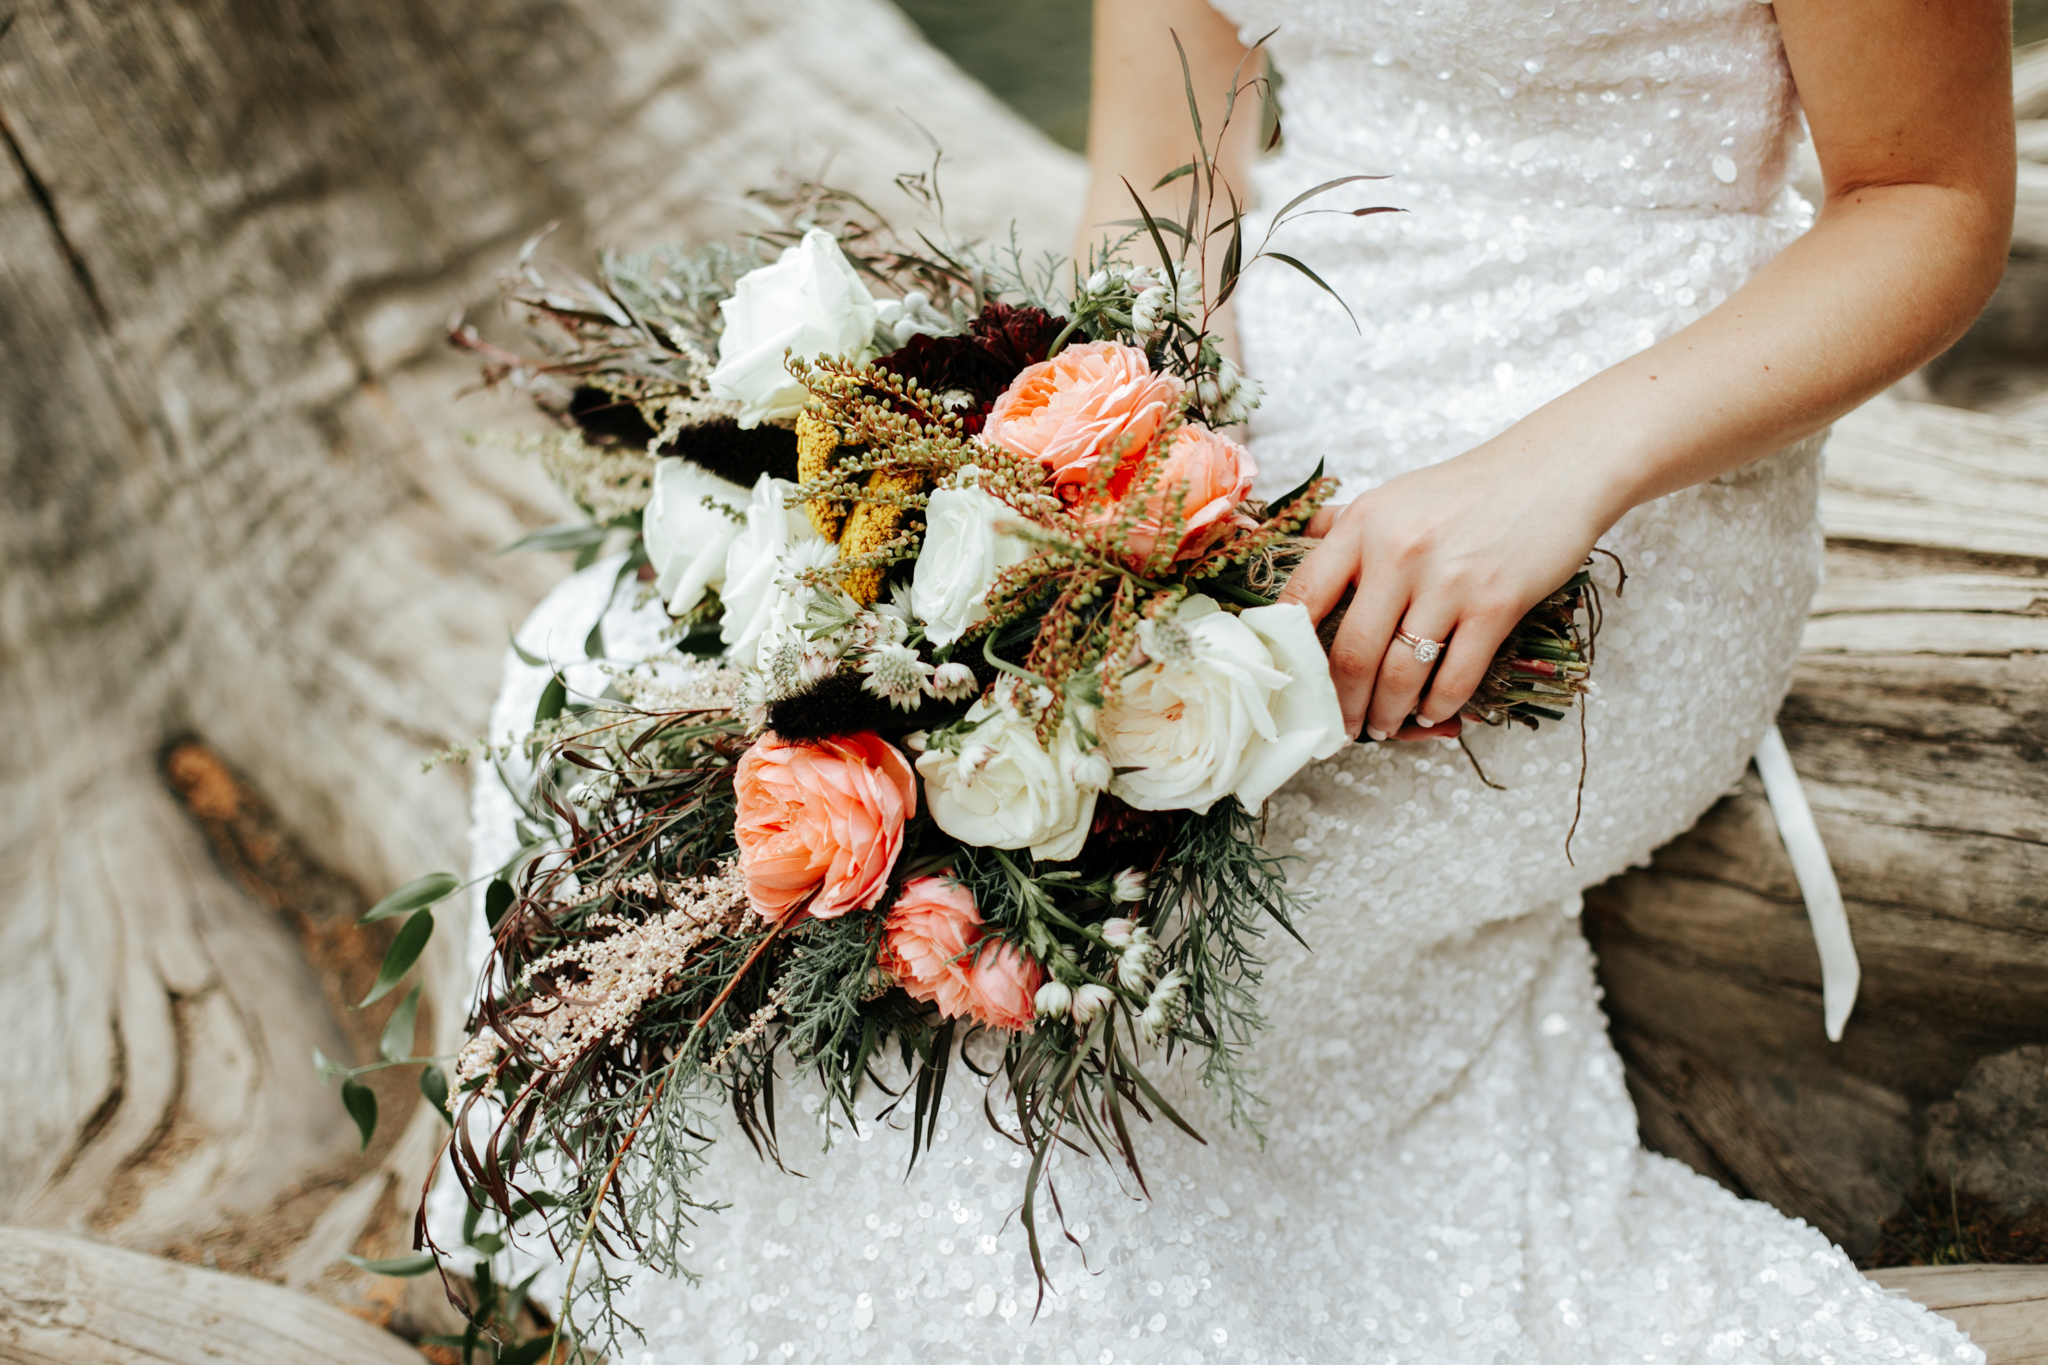 castle-mountain-wedding-photographer-love-and-be-loved-photography-lethbridge-pincher-creek-crowsnest-pass-yannick-rylee-photo-image-picture-141.jpg